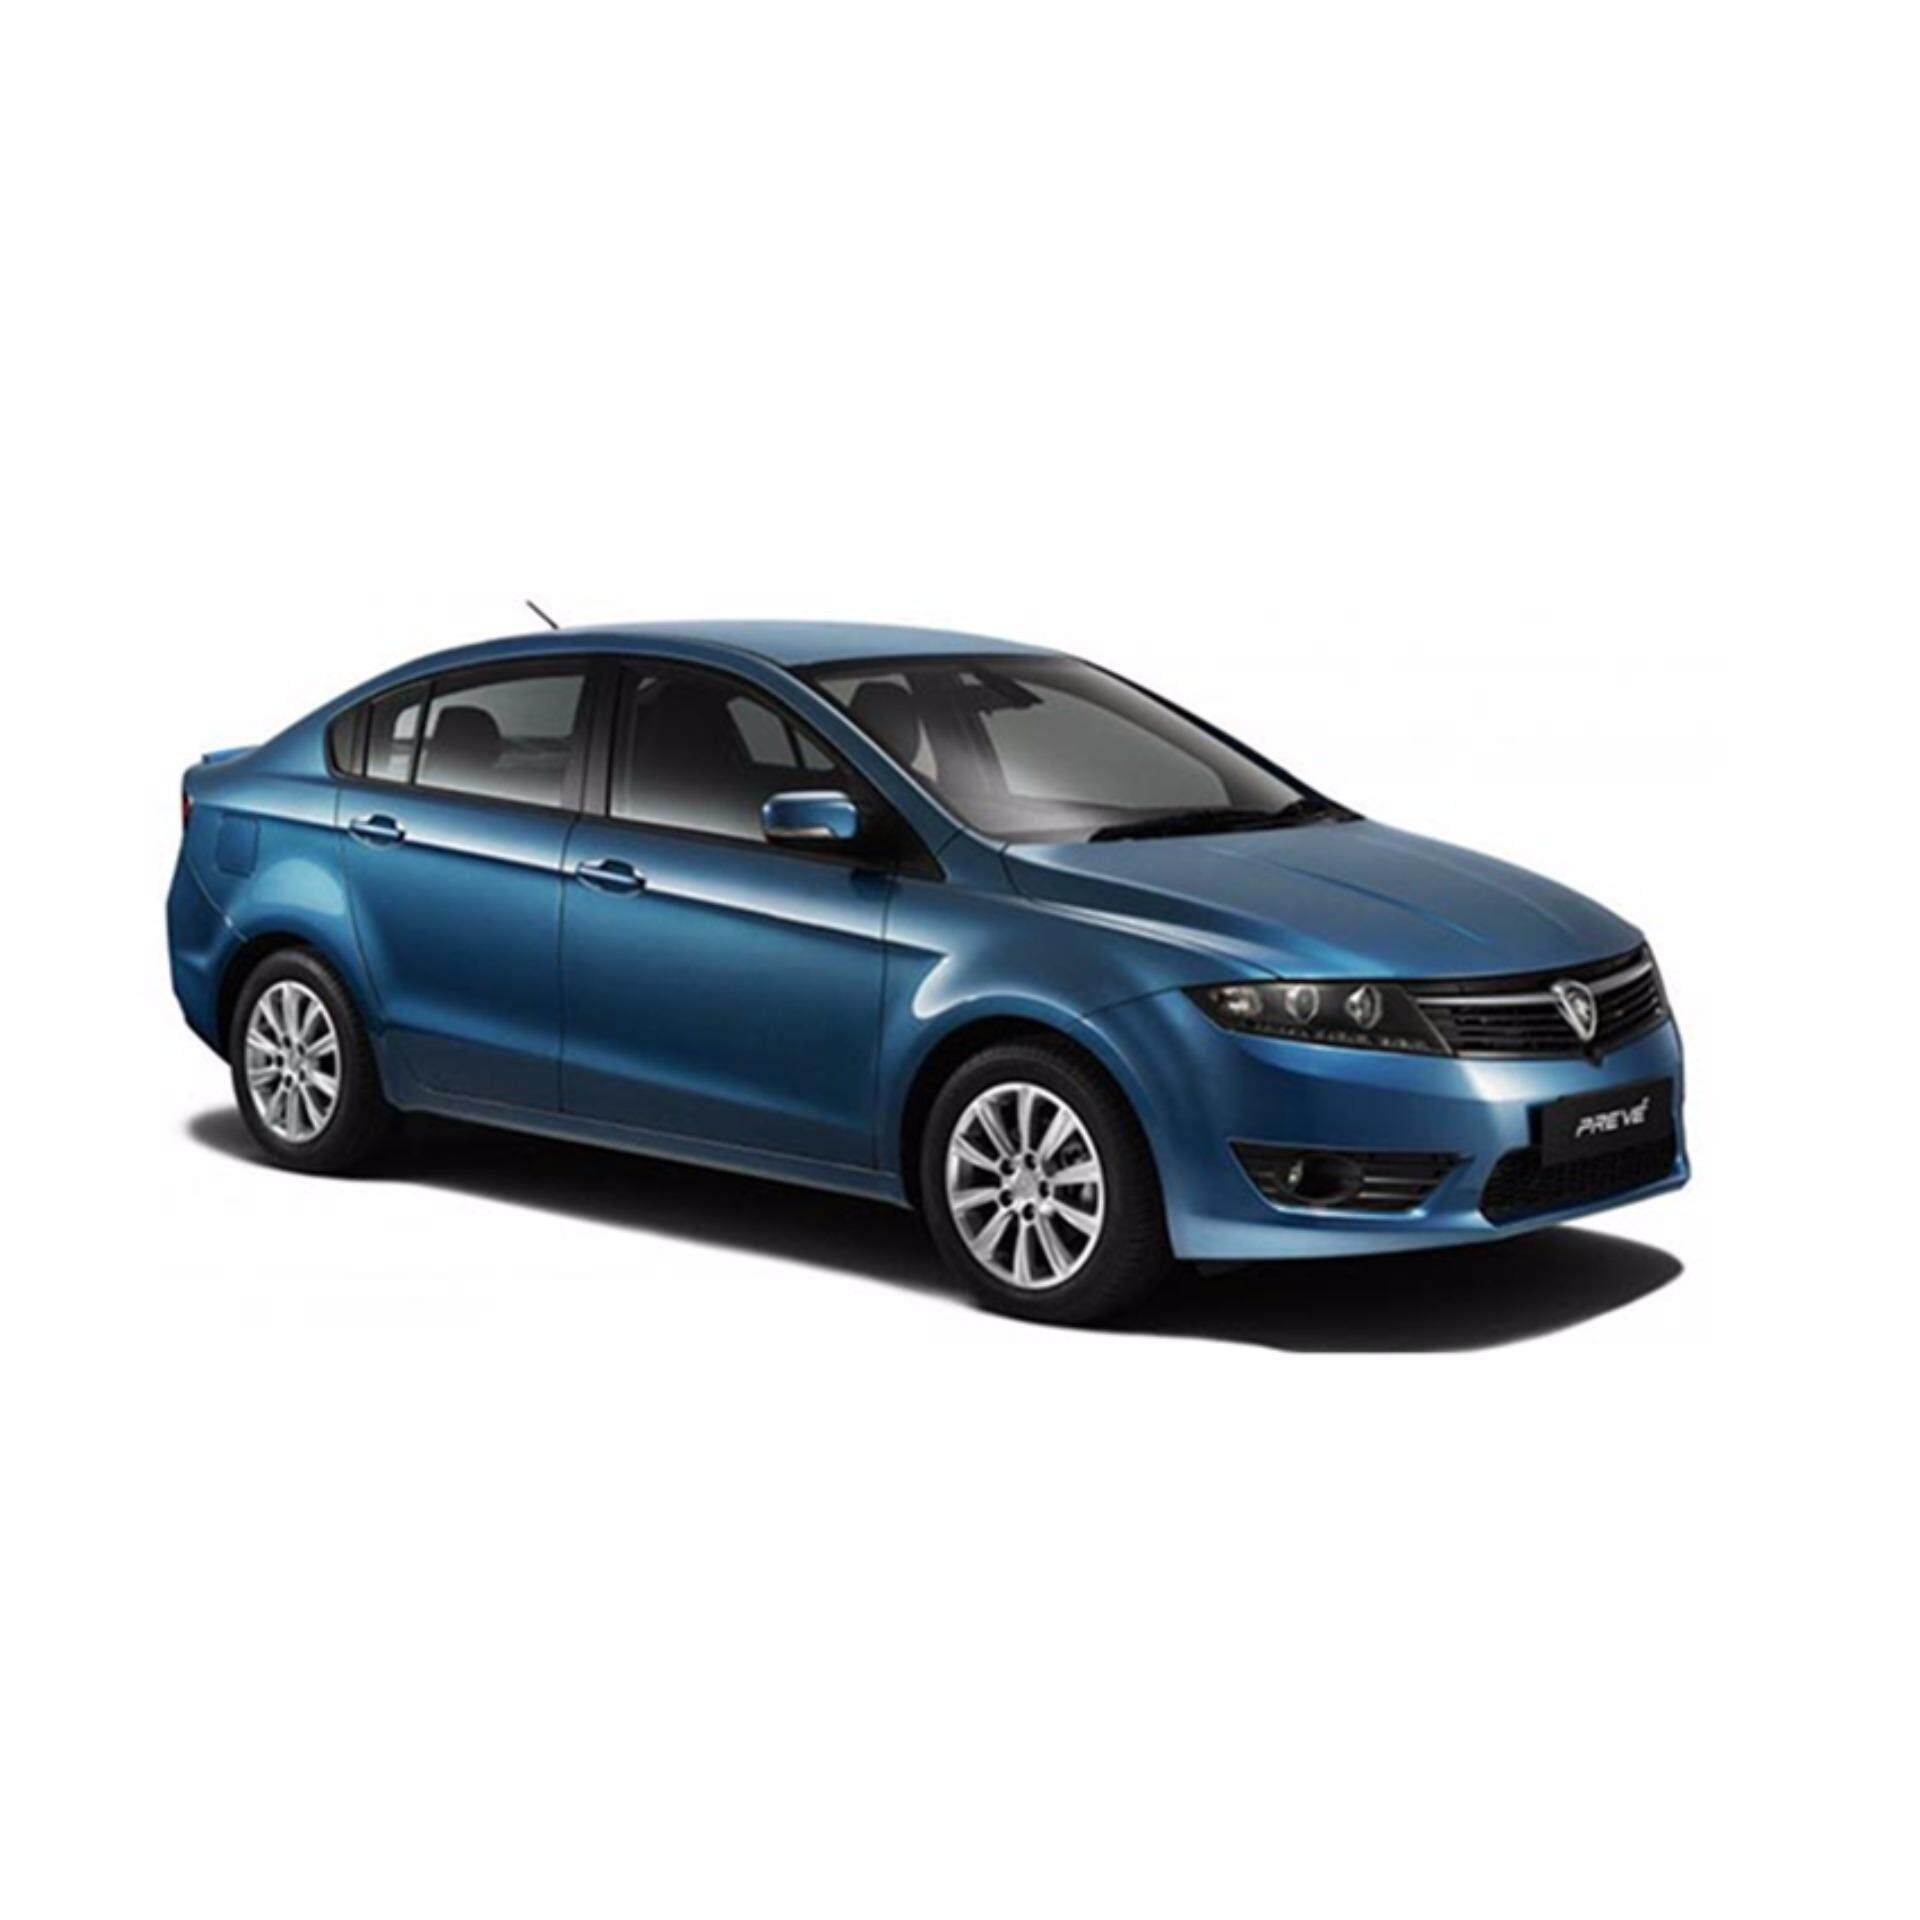 Transparent Car Cover With Available Size (Dust-Proof, Waterproof, Dispossable Plastic) For Car Body - Proton Preve